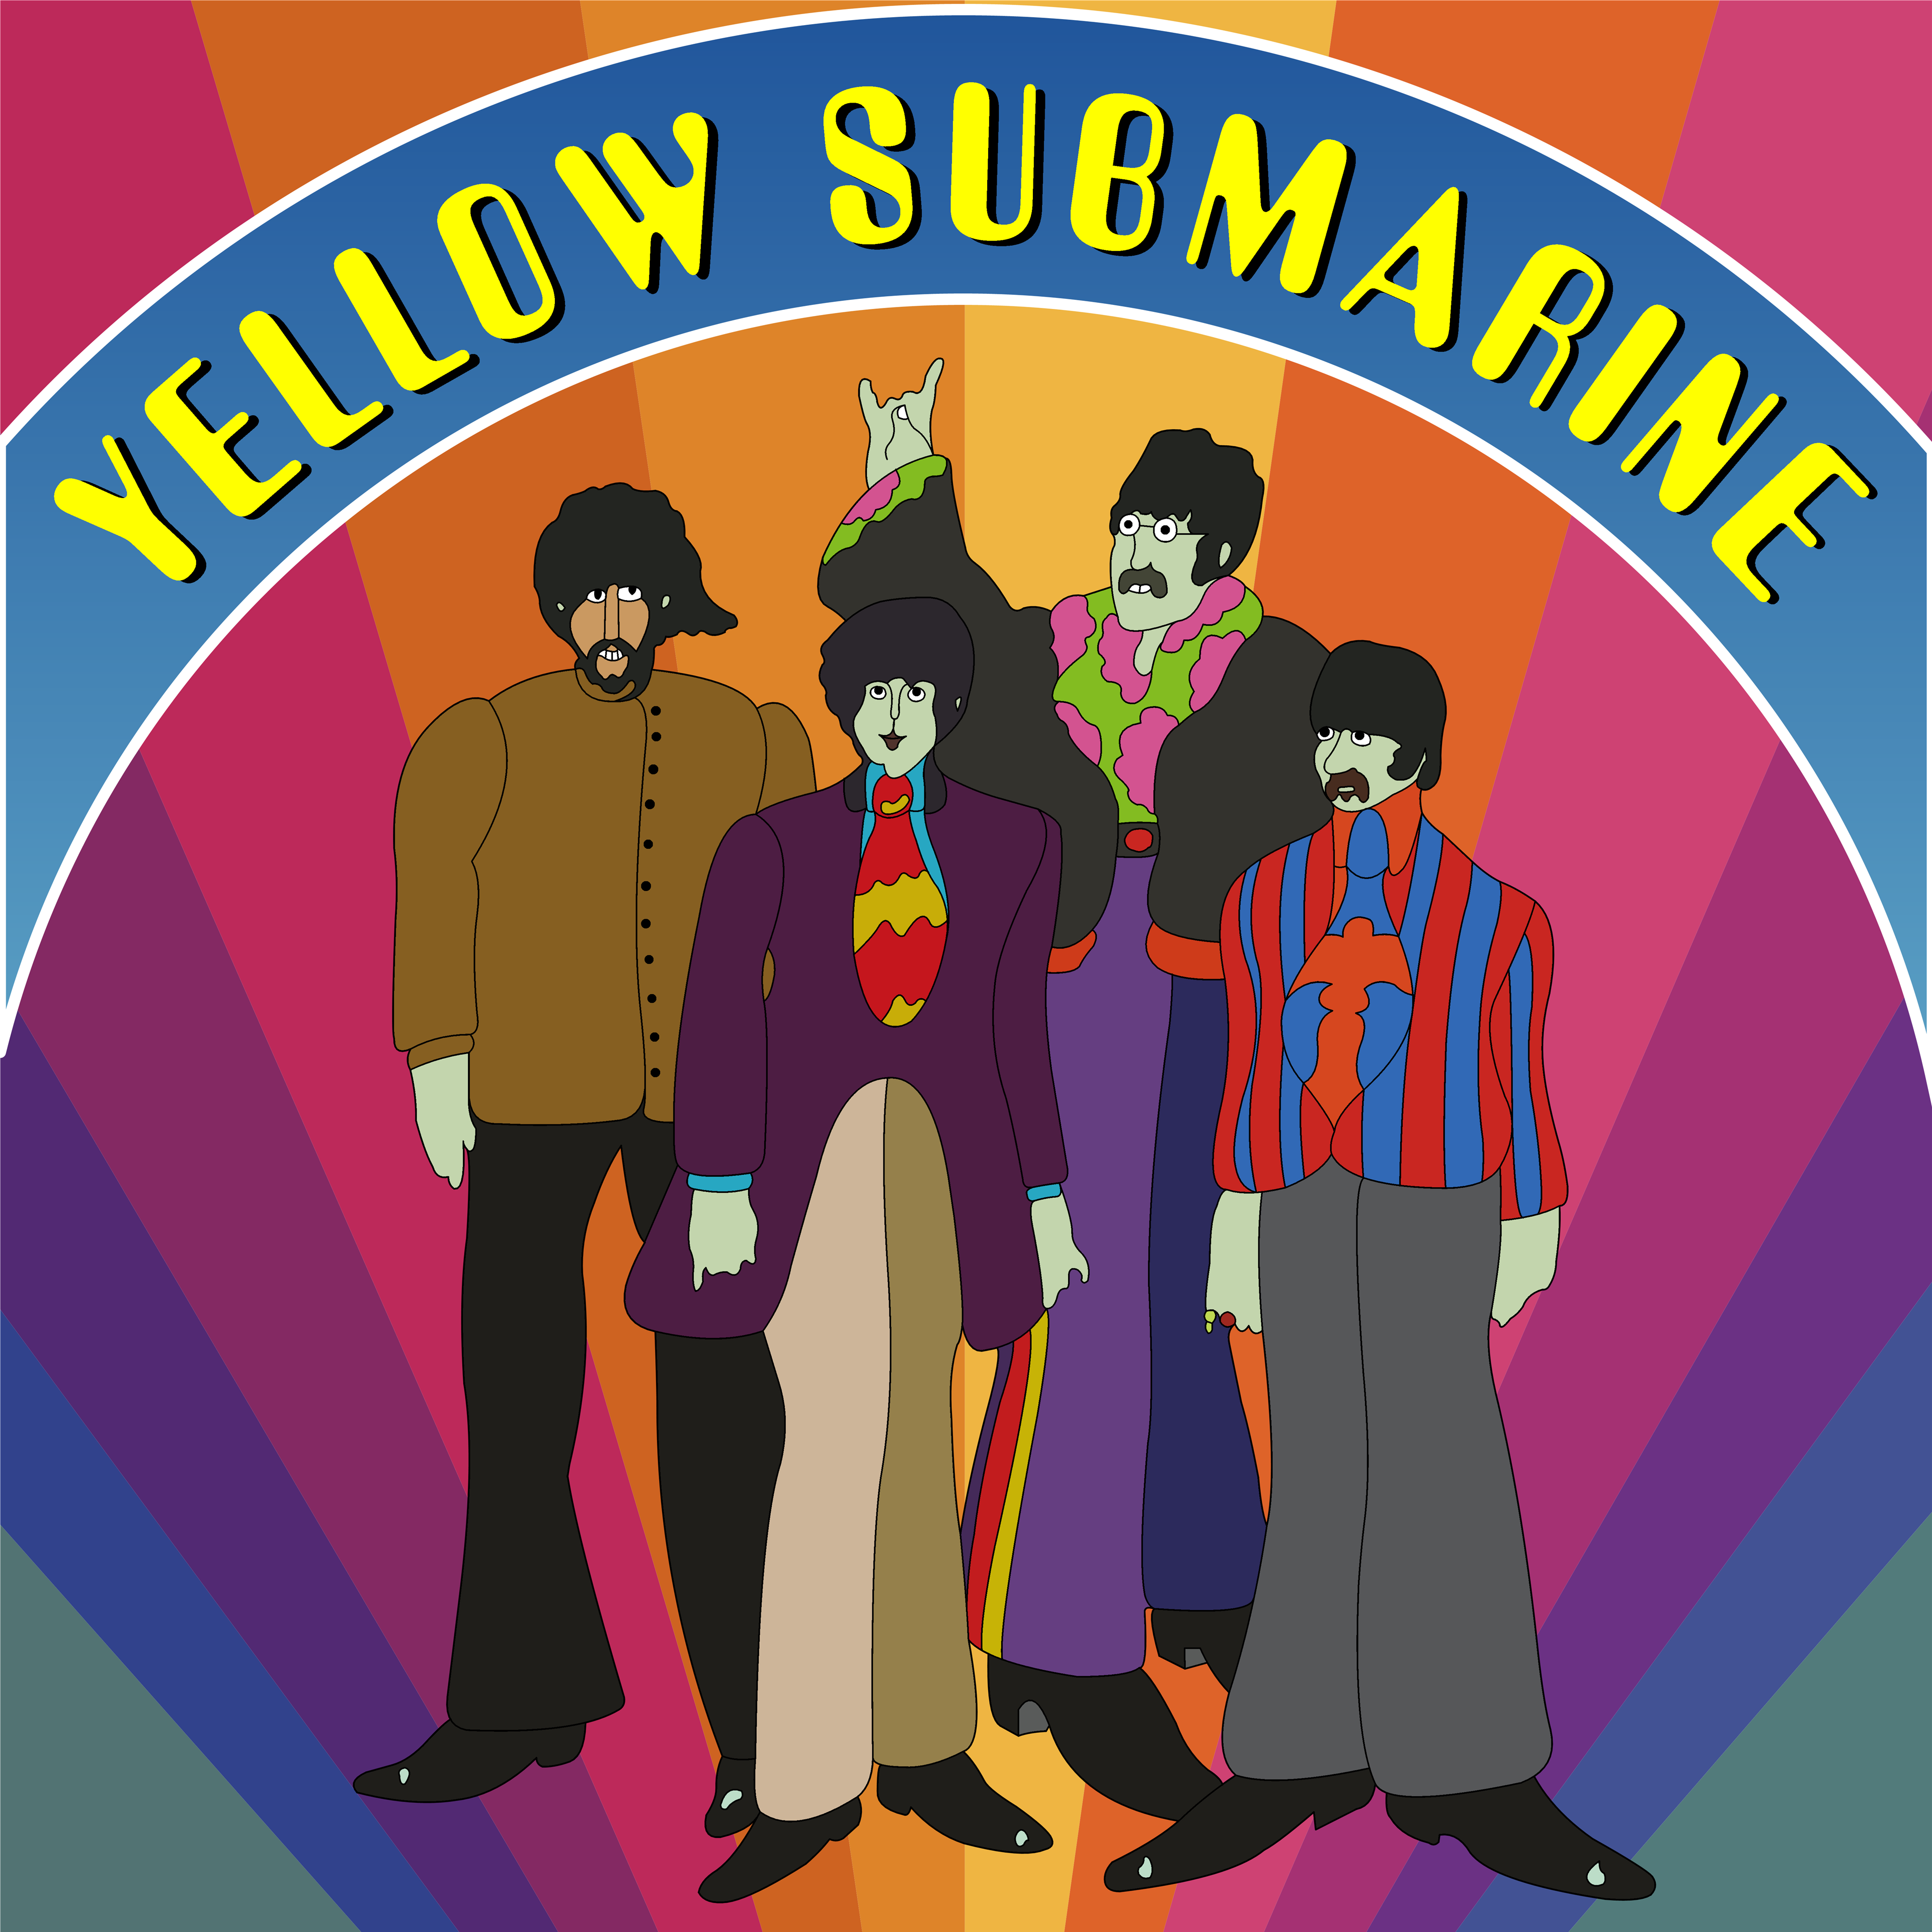 Yellow Submarine Beatles Poster by Vaiktorizer on DeviantArt